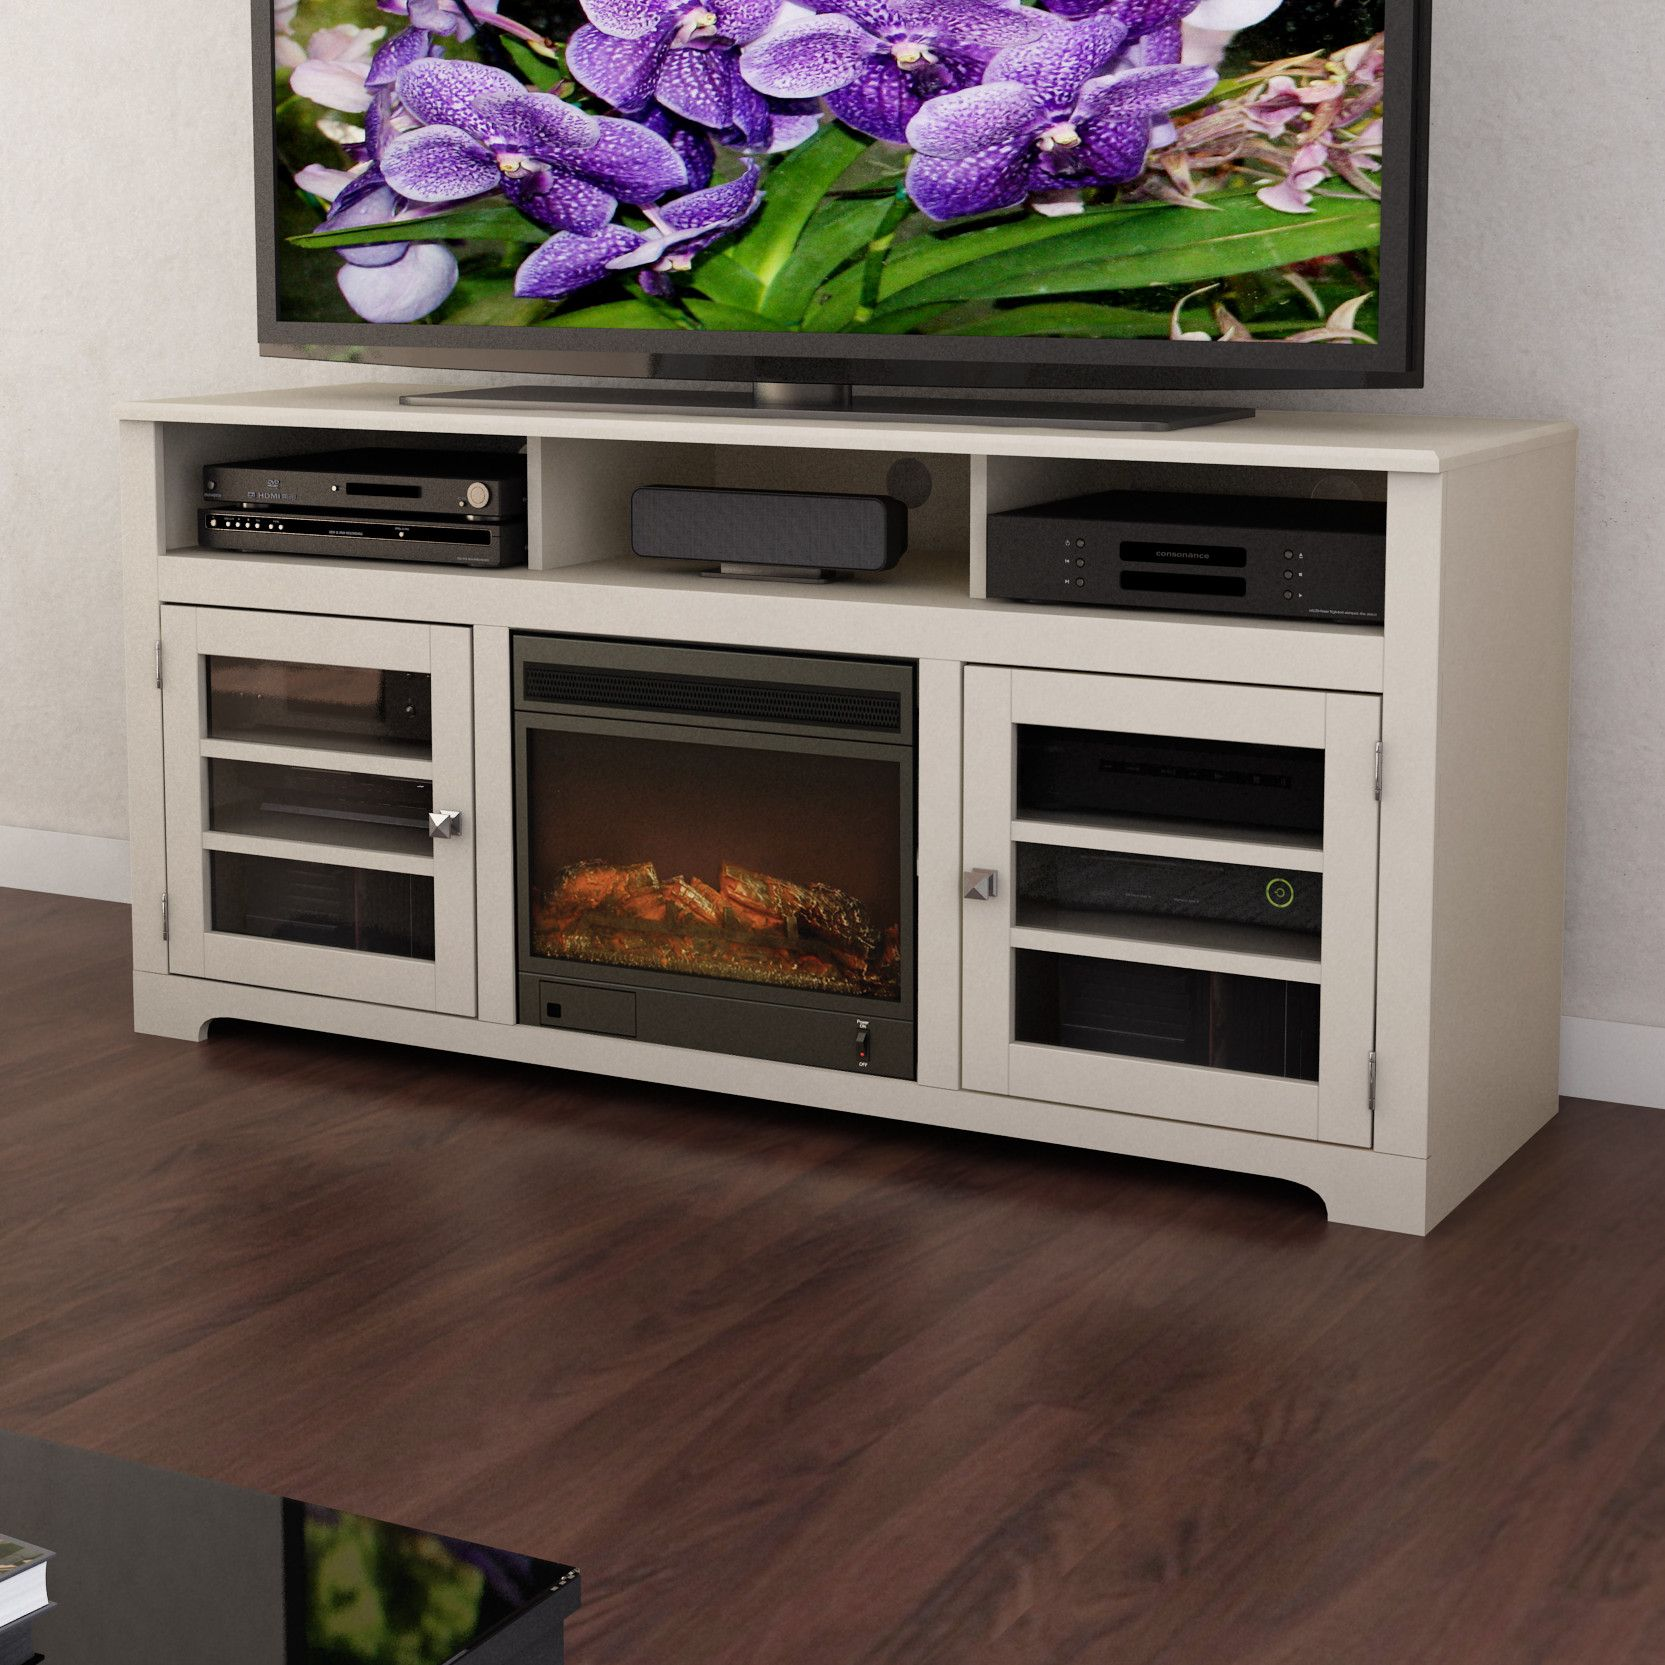 dcor design west lake  tv stand with electric fireplace  - dcor design west lake  tv stand with electric fireplace  reviews wayfair